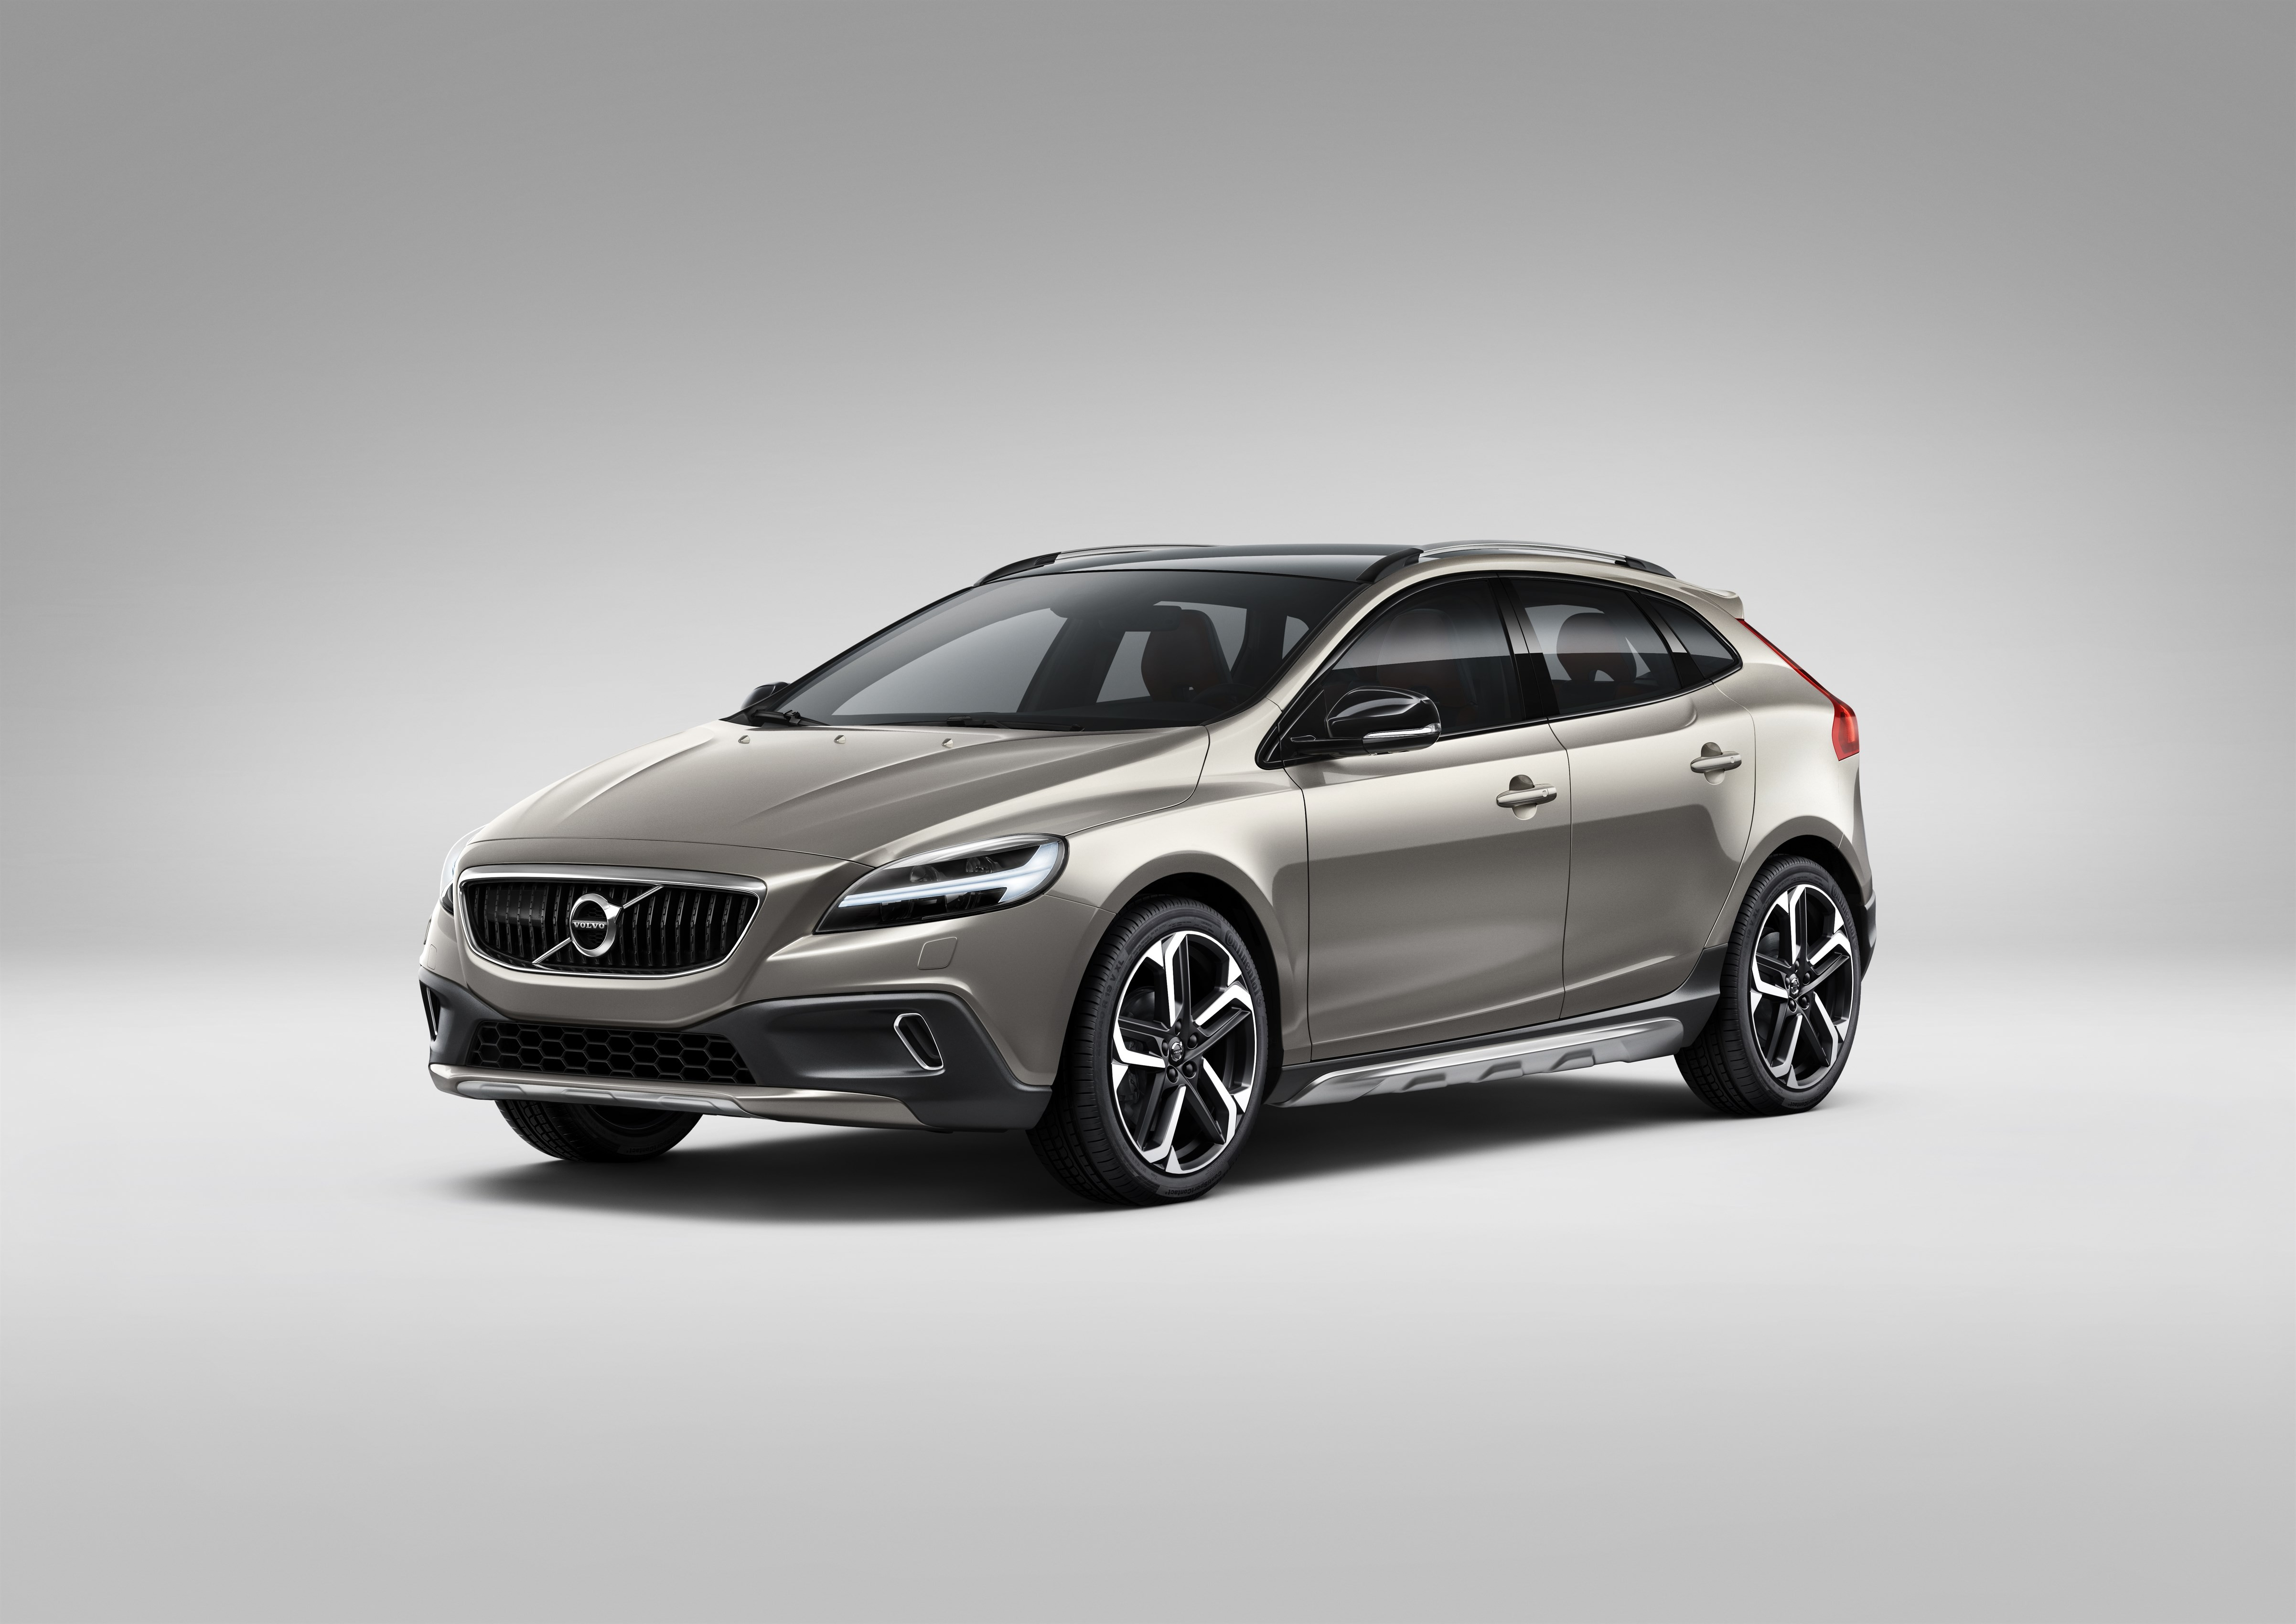 2017 Volvo V40 Cross Country New Engines: 1.5L T3 and 2.0L ...